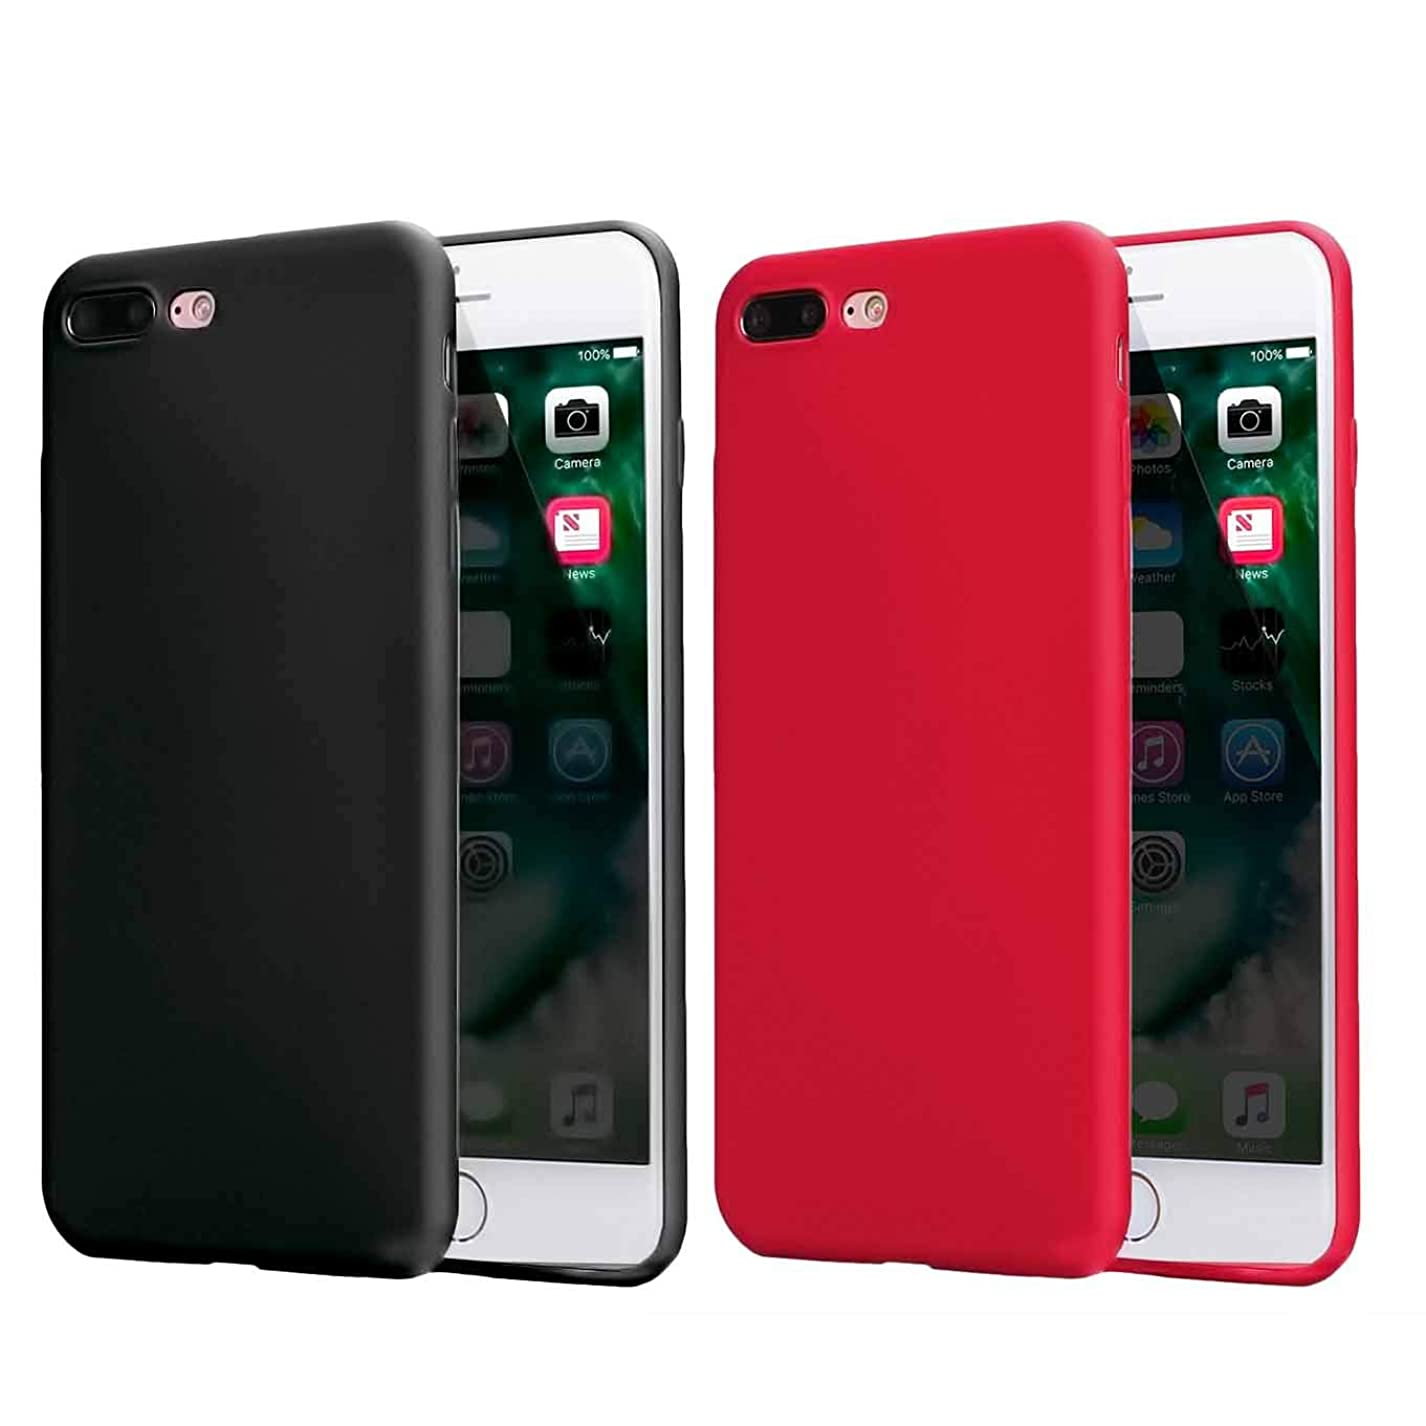 2 Pack Compatible withiPhone 8 Plus Case 2017/iPhone 7 2016 Case,Soft TPU Slim Thin Durable Anti-Scratch Shock-Absorption Resistant Shield Cell Mobile Phone Cover Case,Girls Women Man Boys,Black+Red hgu835013468962